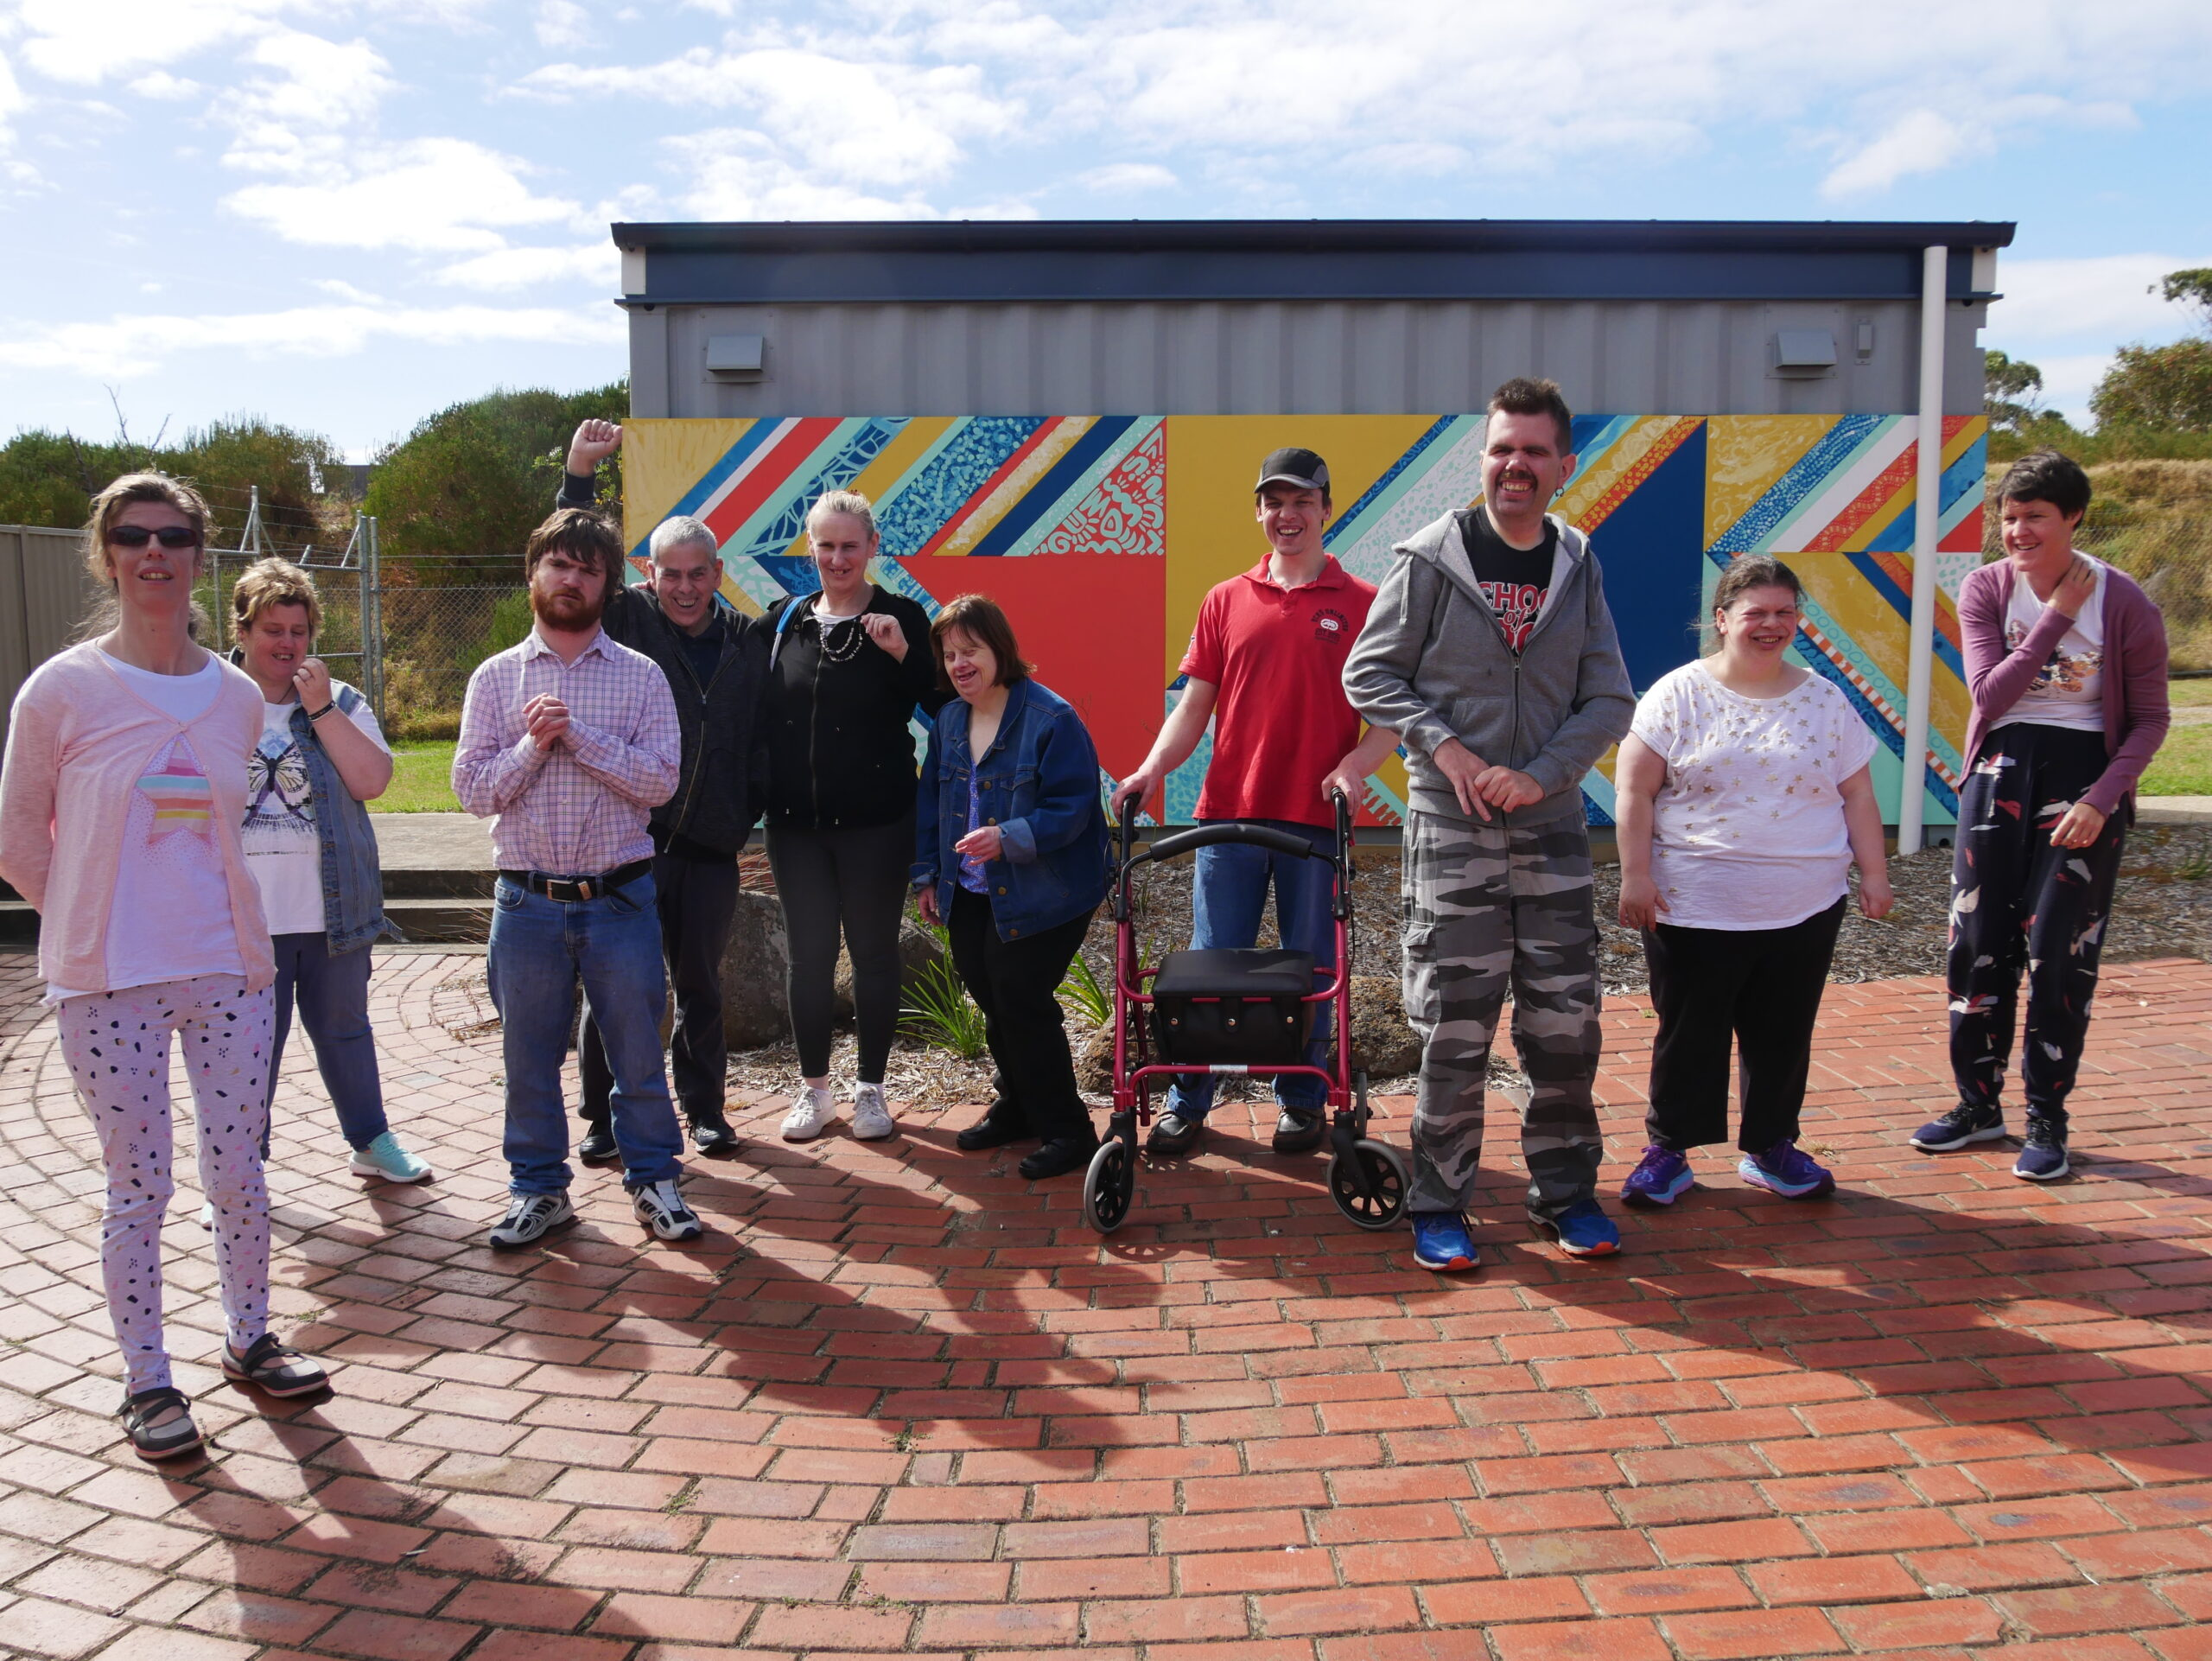 A group shot of the Art About artists infront of a brightly coloured mural.